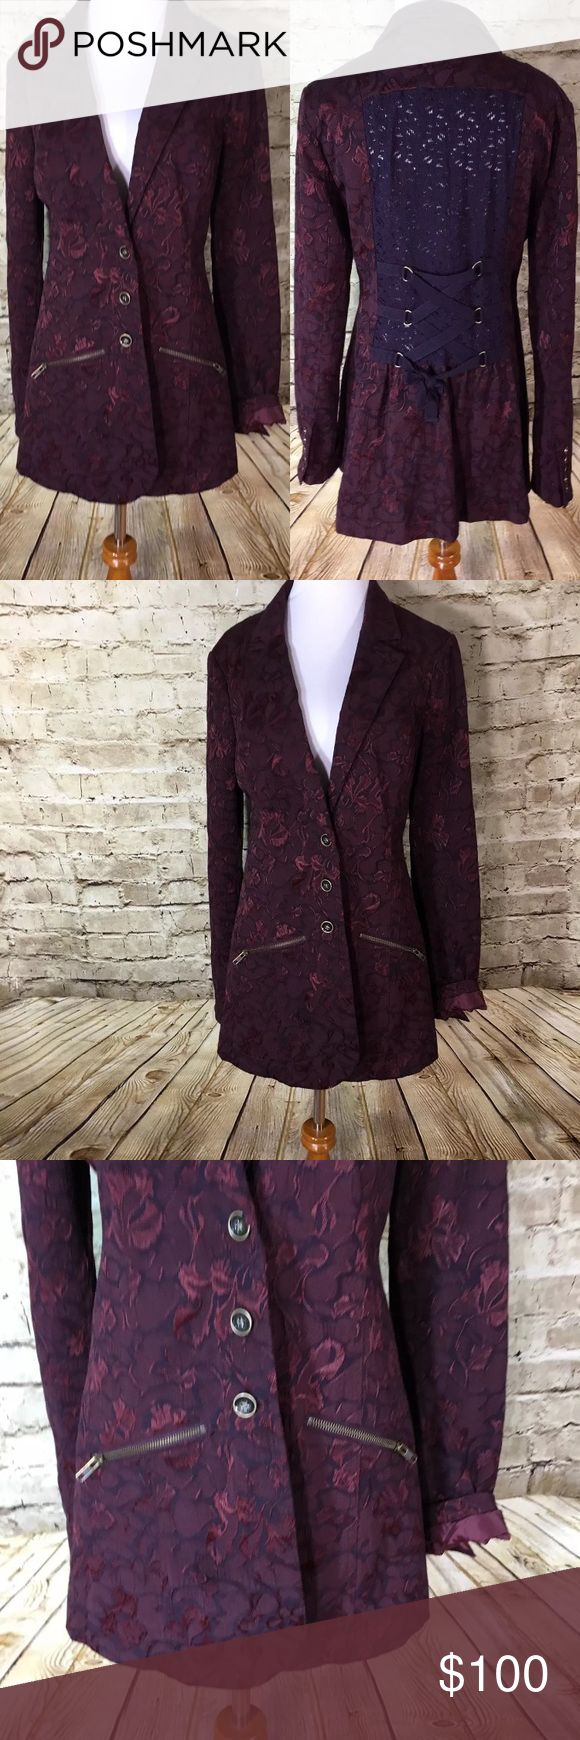 """Free People Jacquard Brocade Jacket Victorian Name Brand: Free People  Condition: Pre Owned, Excellent condition light wear, no holes, stains or flaws to note  Size: 8 (see measurements)  Color: Burgundy   Style: Button Front Blazer Style Jacket With Lace Back and Ties. Front Pockets.  Material: 49% Cotton 49% Polyester 2% Spandex  Always check the measurements, label sizes are not consistent.   Measurements are approximate, and are of item laying flat and unstreched: Waist:17 """" Length:31 """"…"""